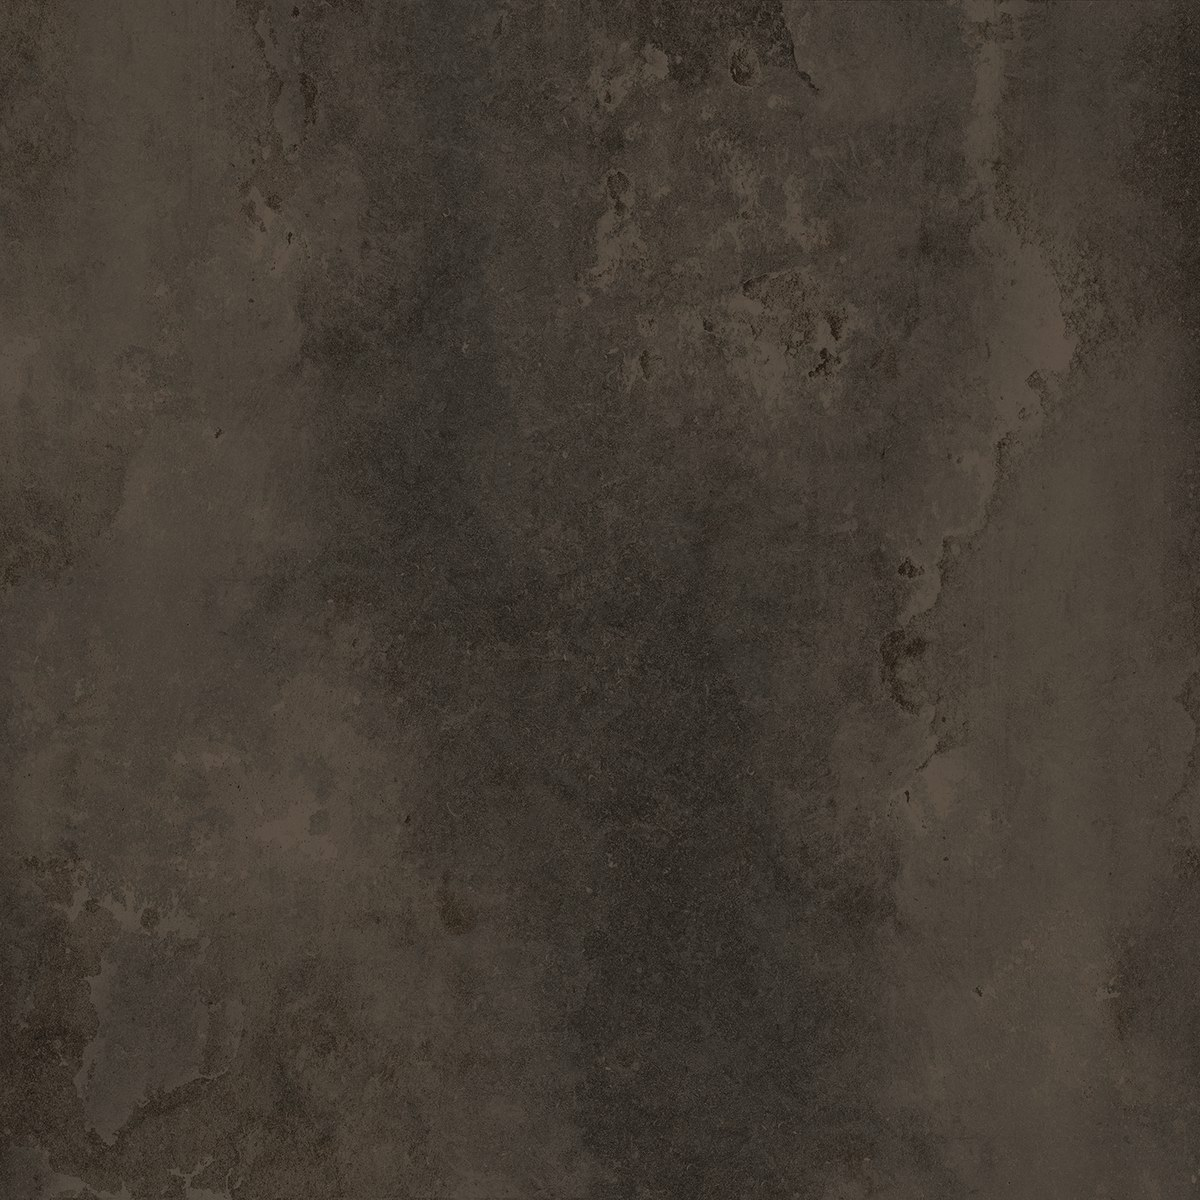 Керамогранит Rue de Paris Lap. Black 60x60